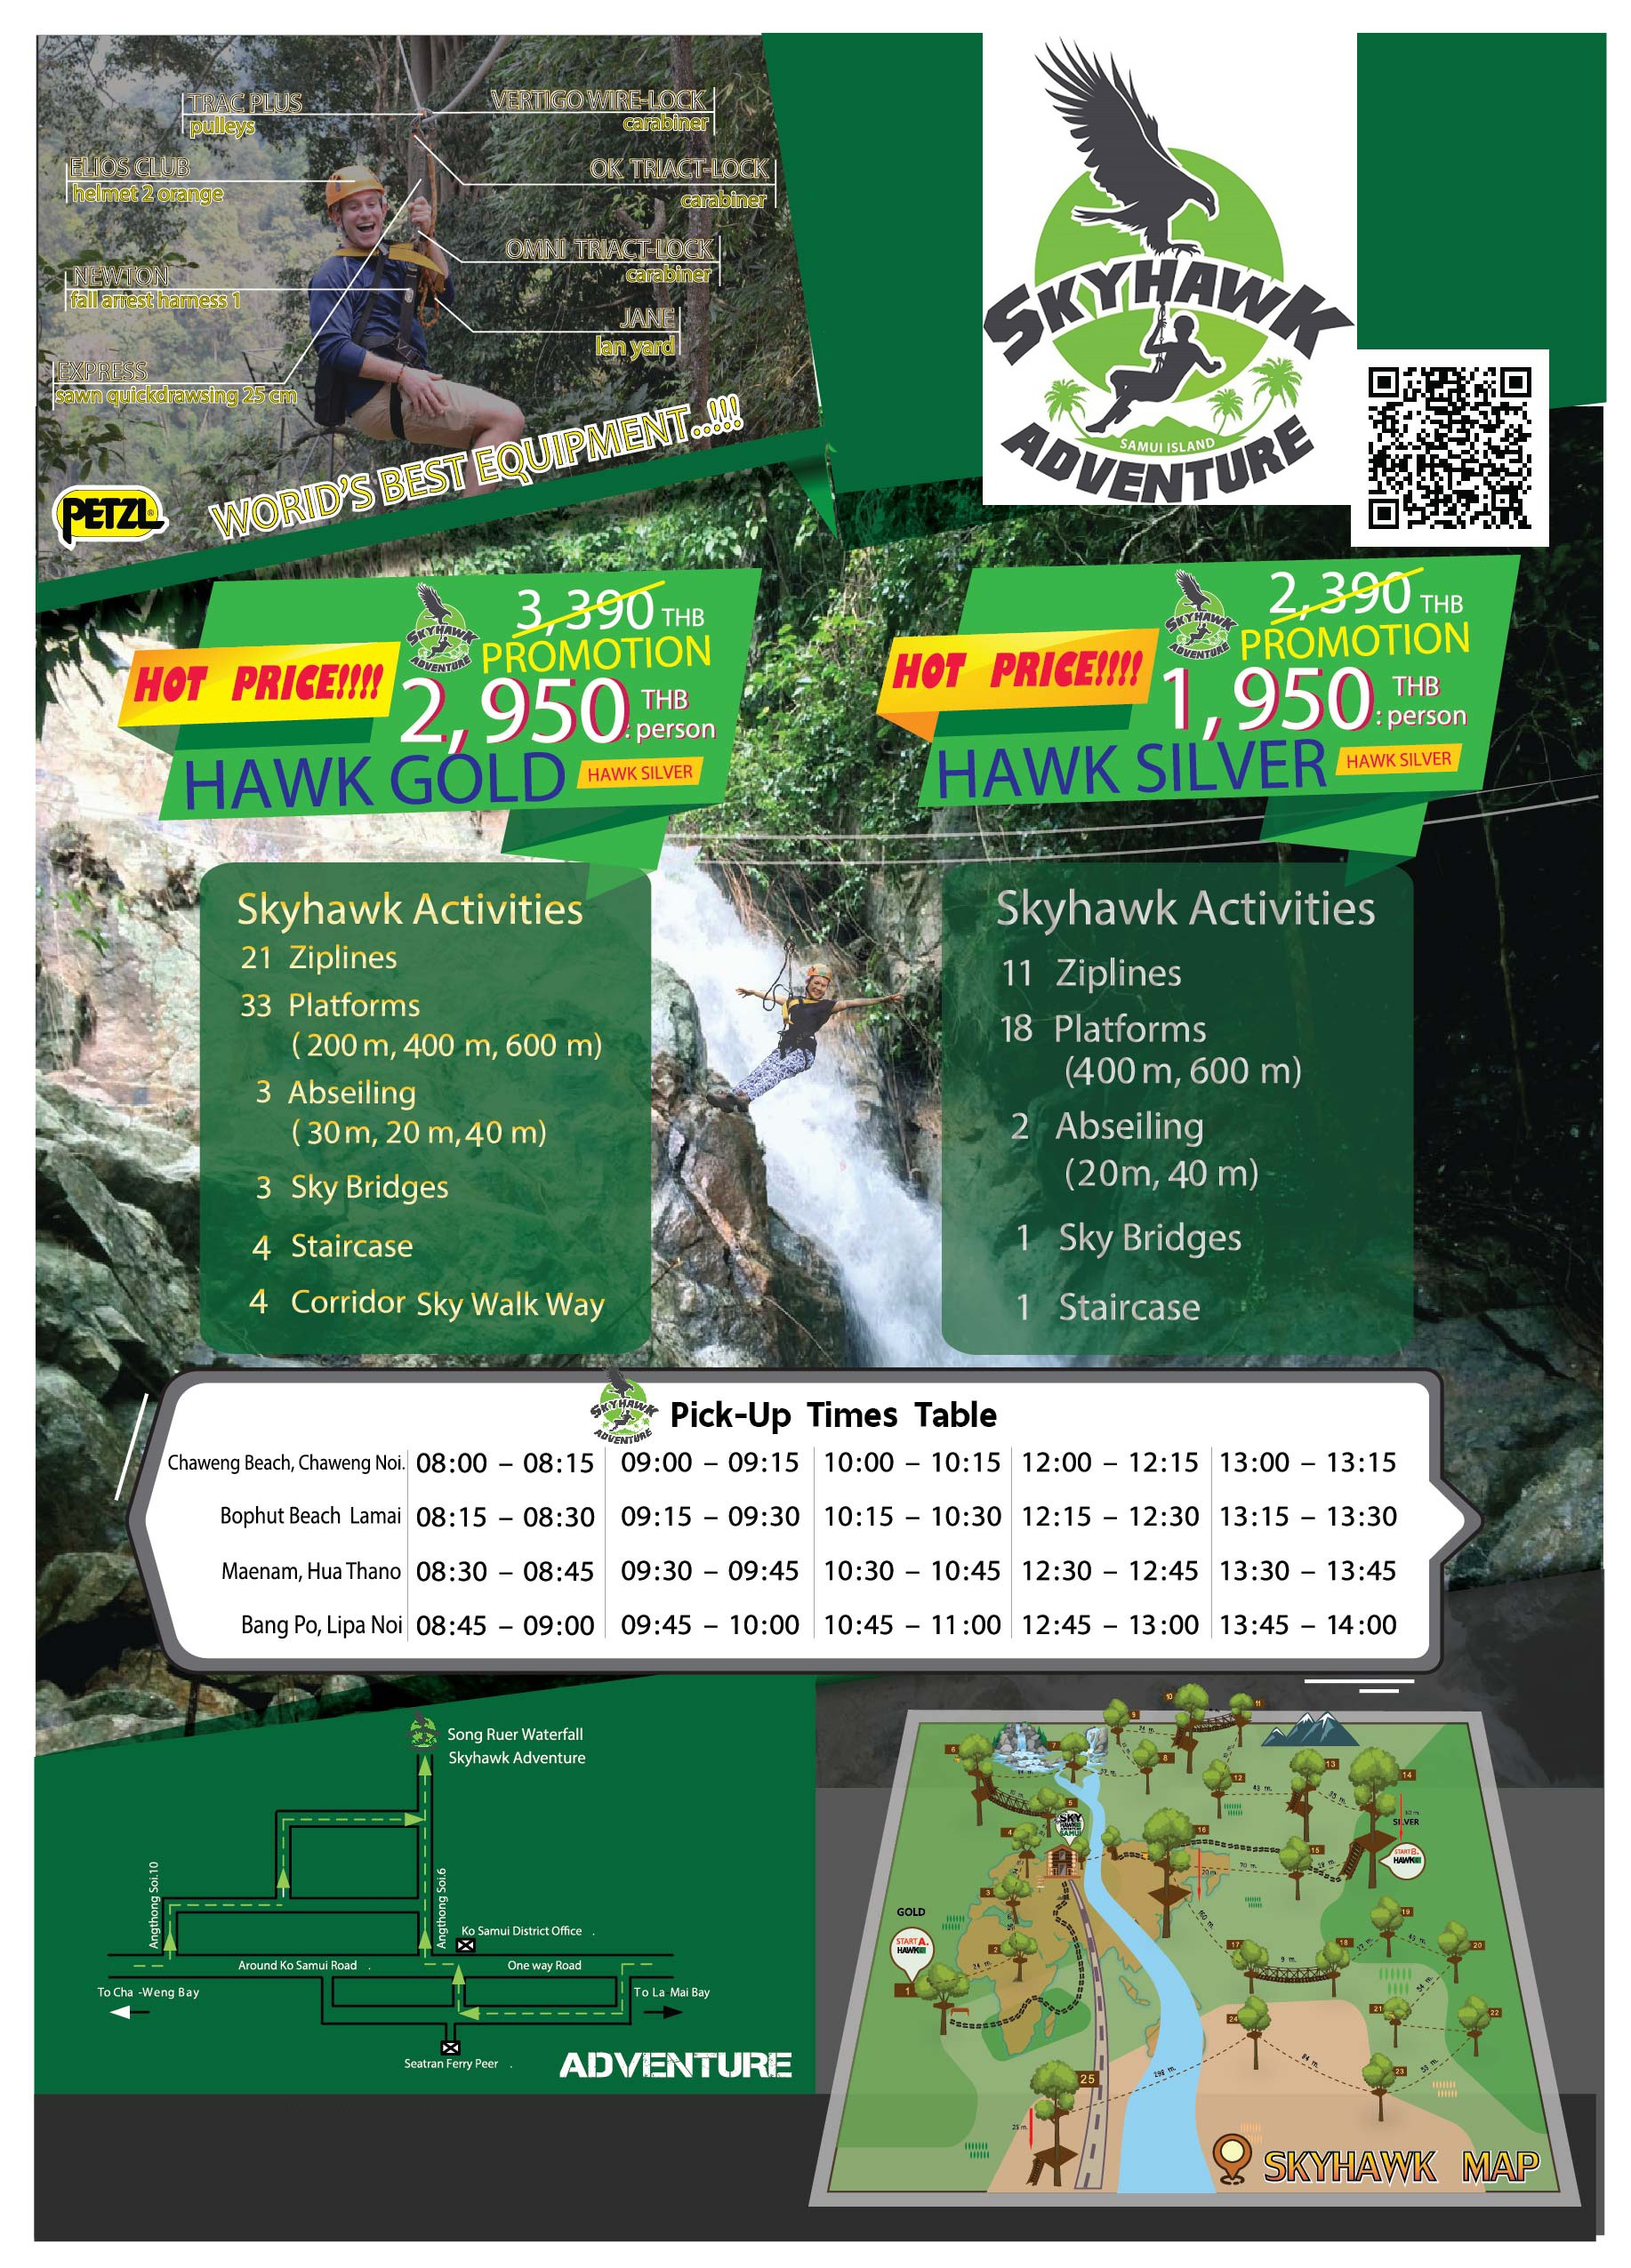 Skyhawk Adventure Opening on 2017 to provide the biggest and longest Zipline on Koh Samui with 33 platforms Flying through rain forest hidden waterfall and sea view